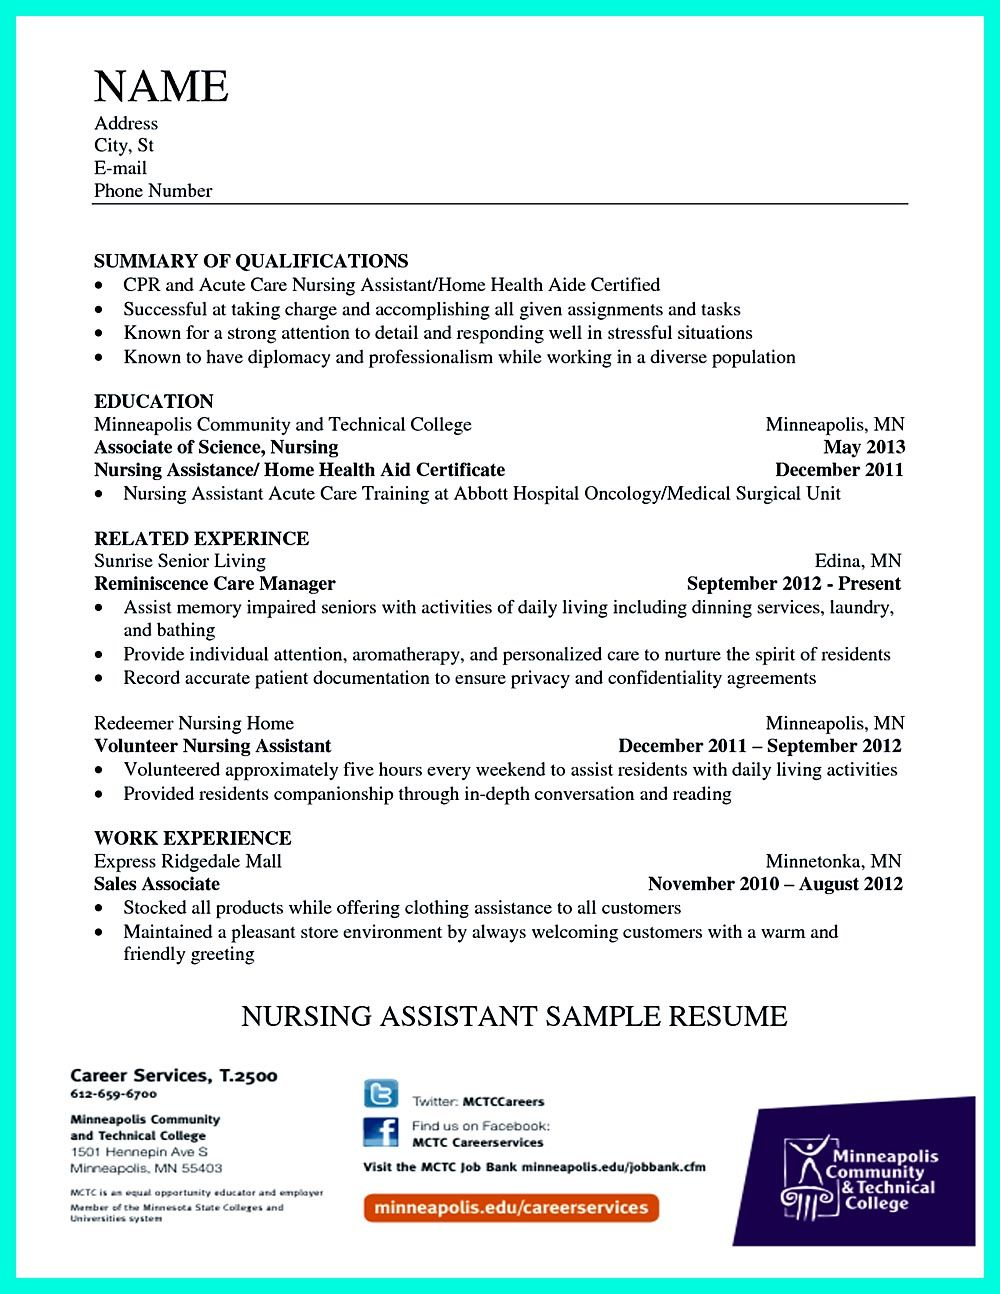 Writing Certified Nursing Assistant Resume is simple if you follow ...